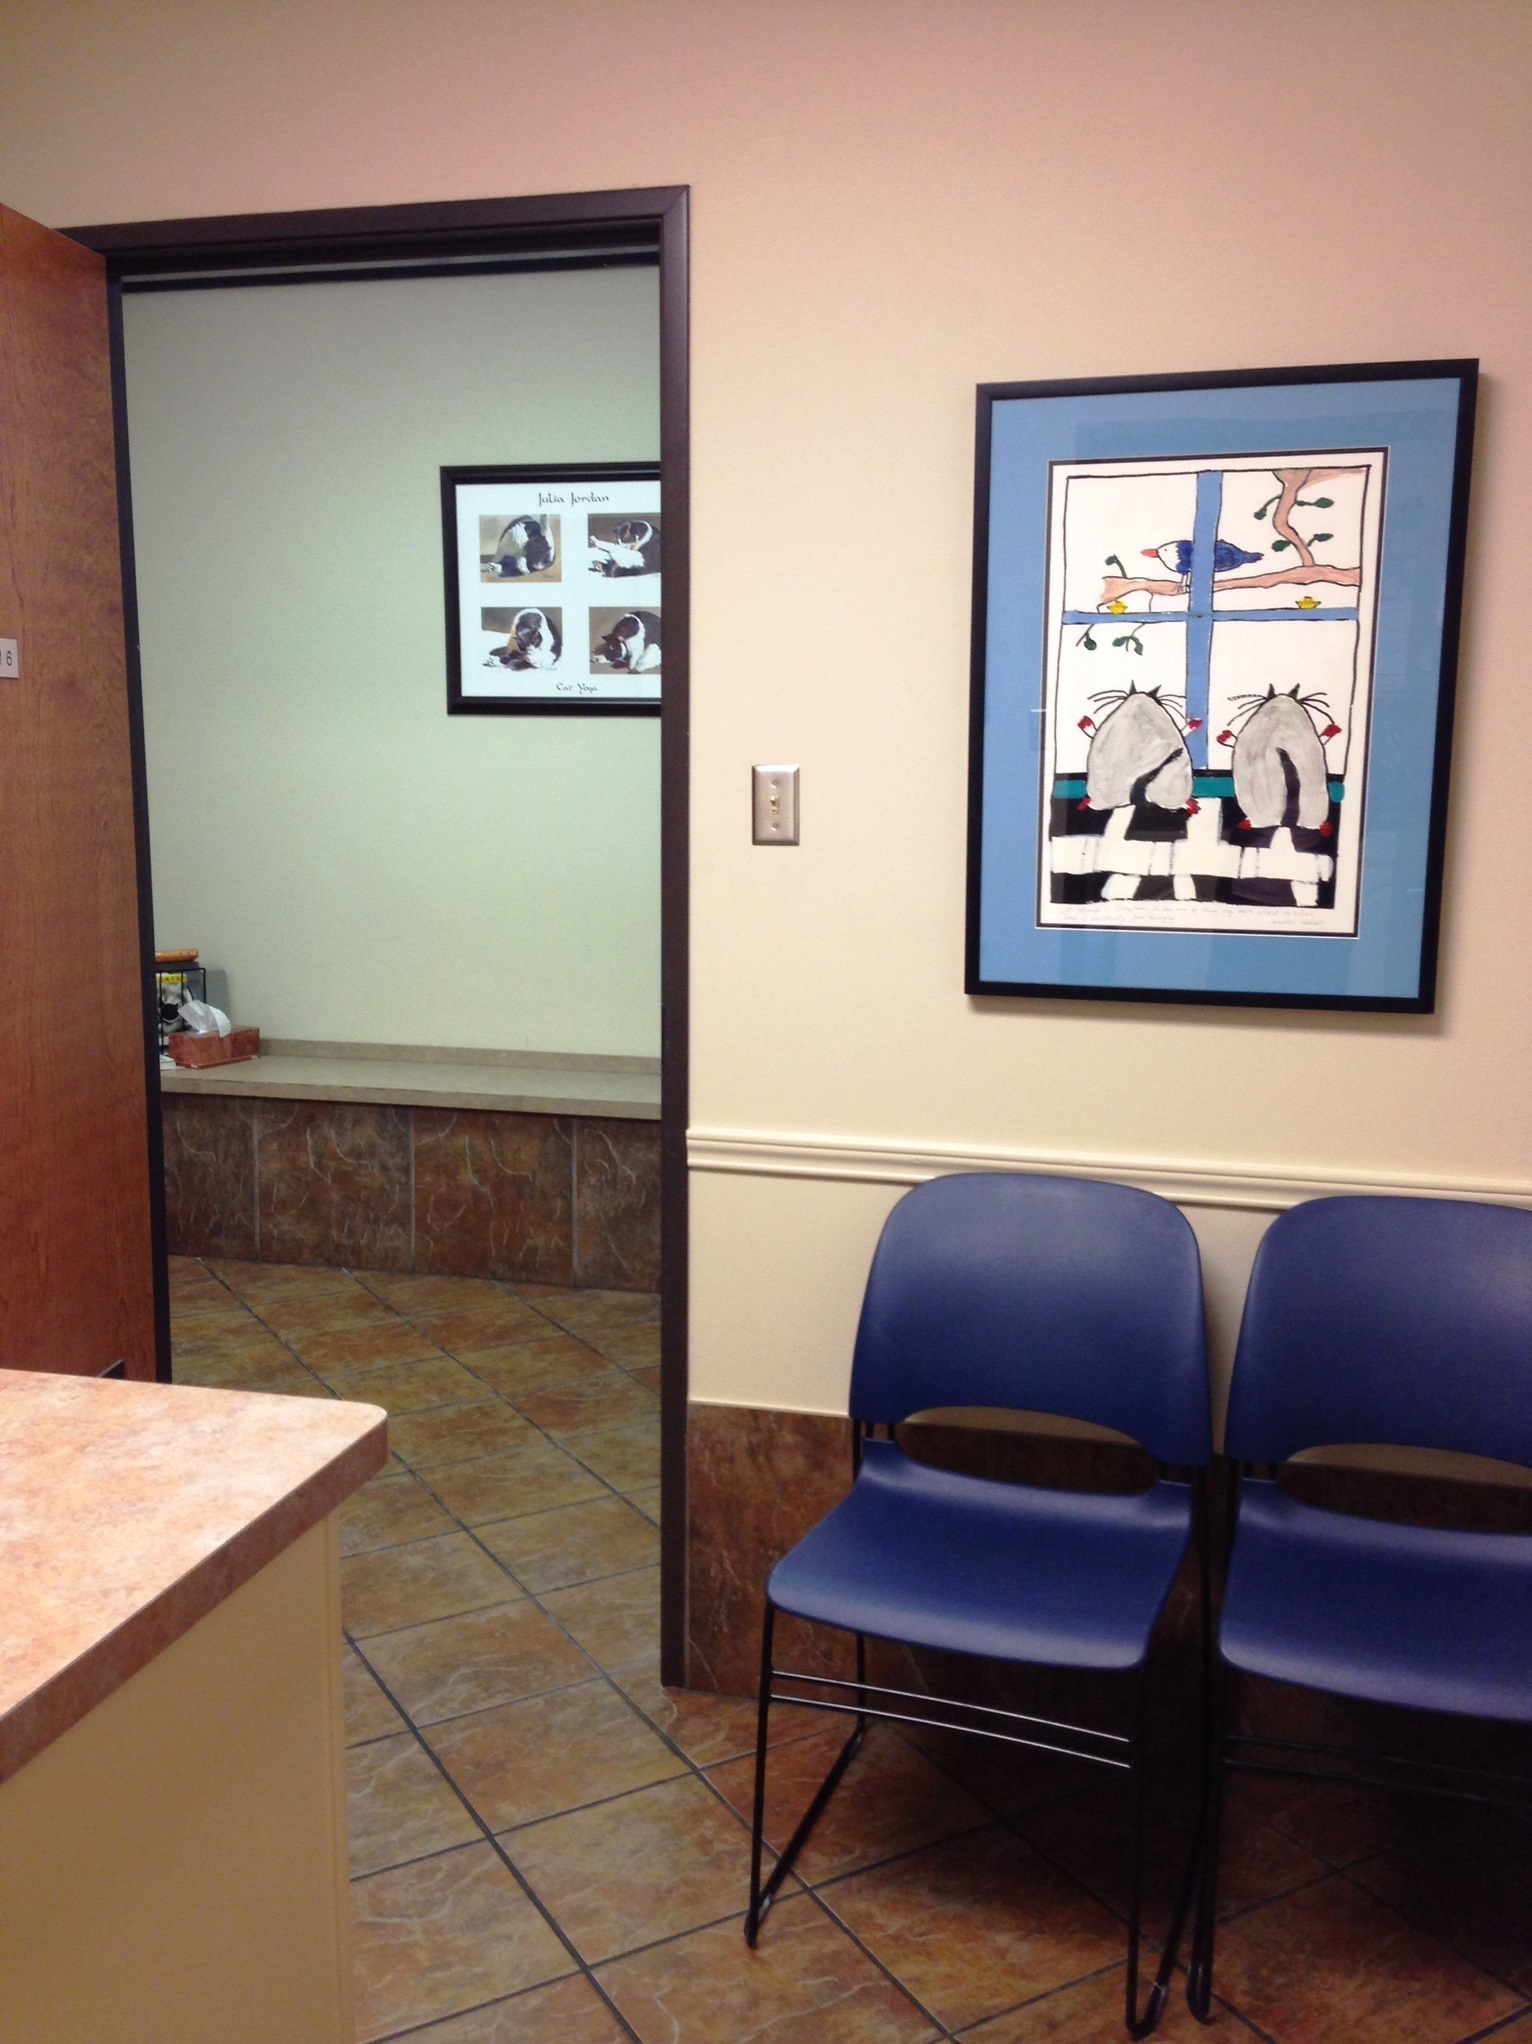 Kitty Exam Room